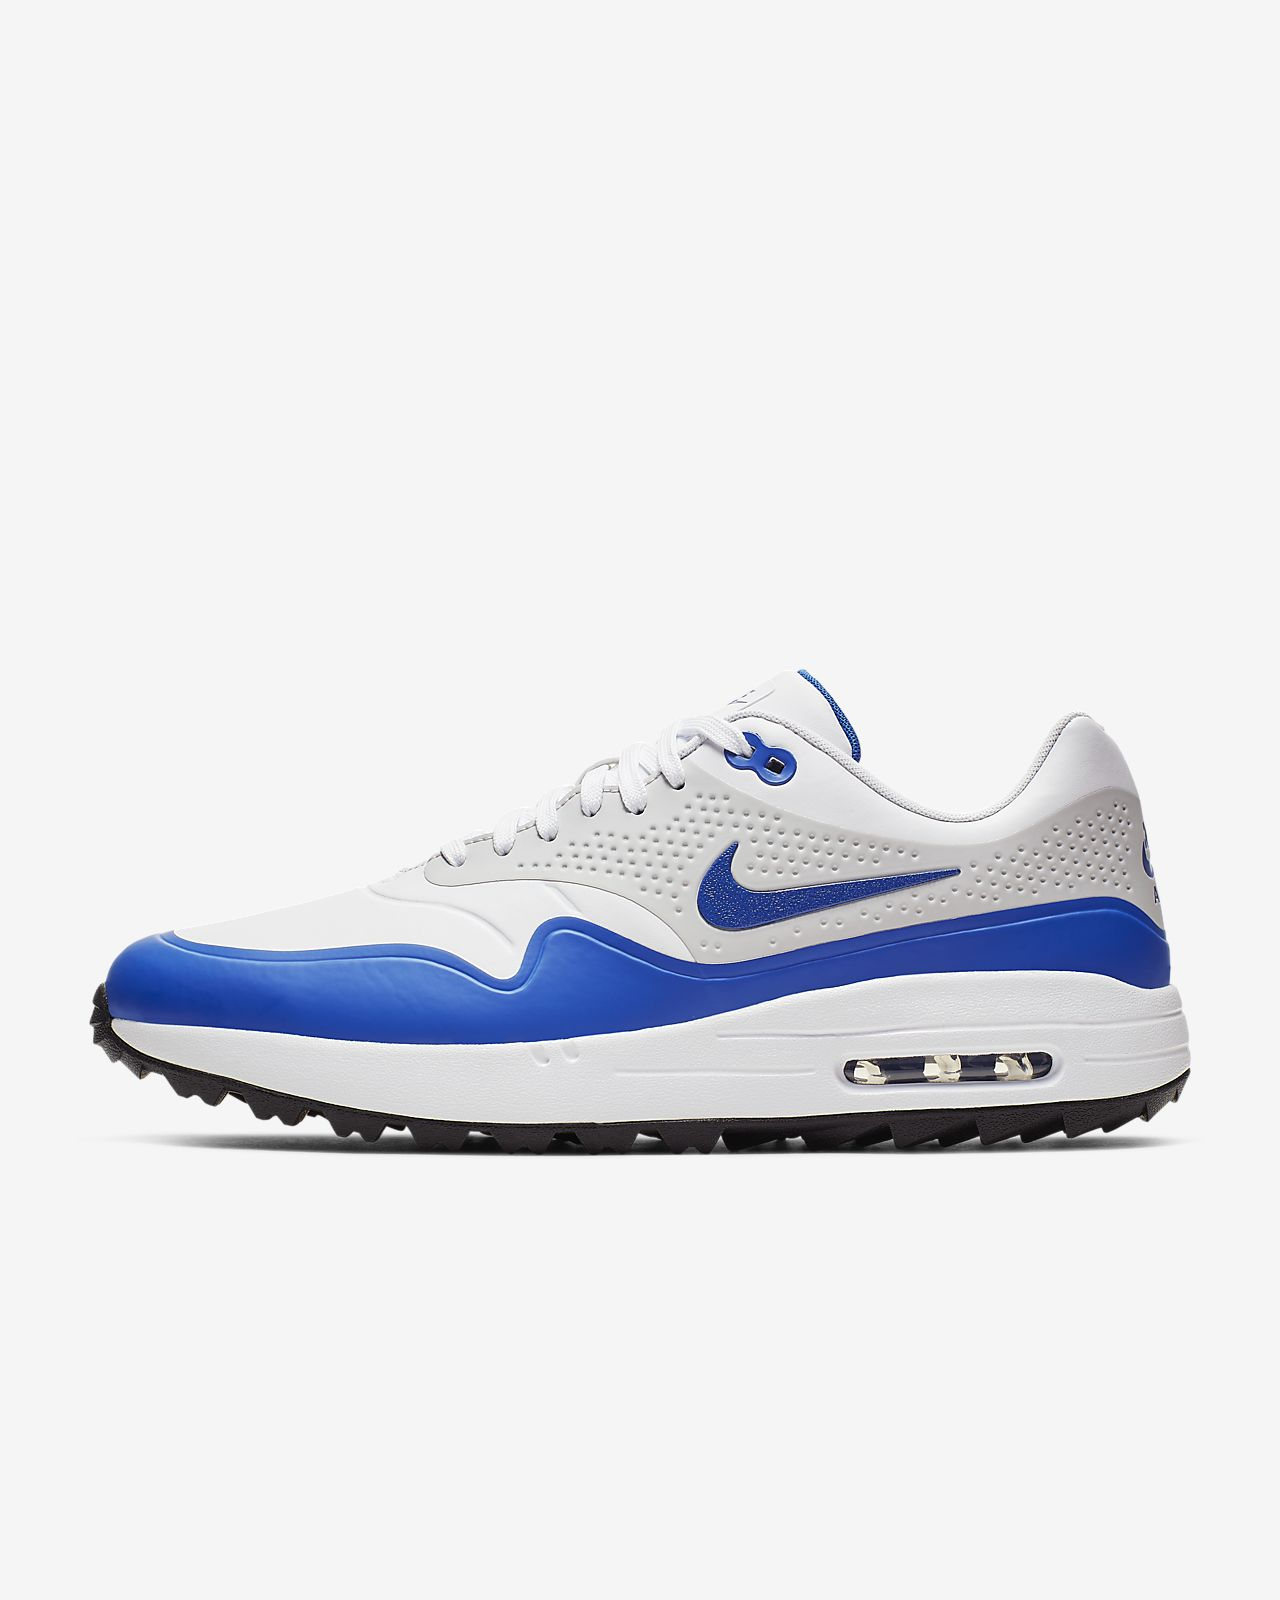 c33d2f4019a Nike Air Max 1 G Men's Golf Shoe